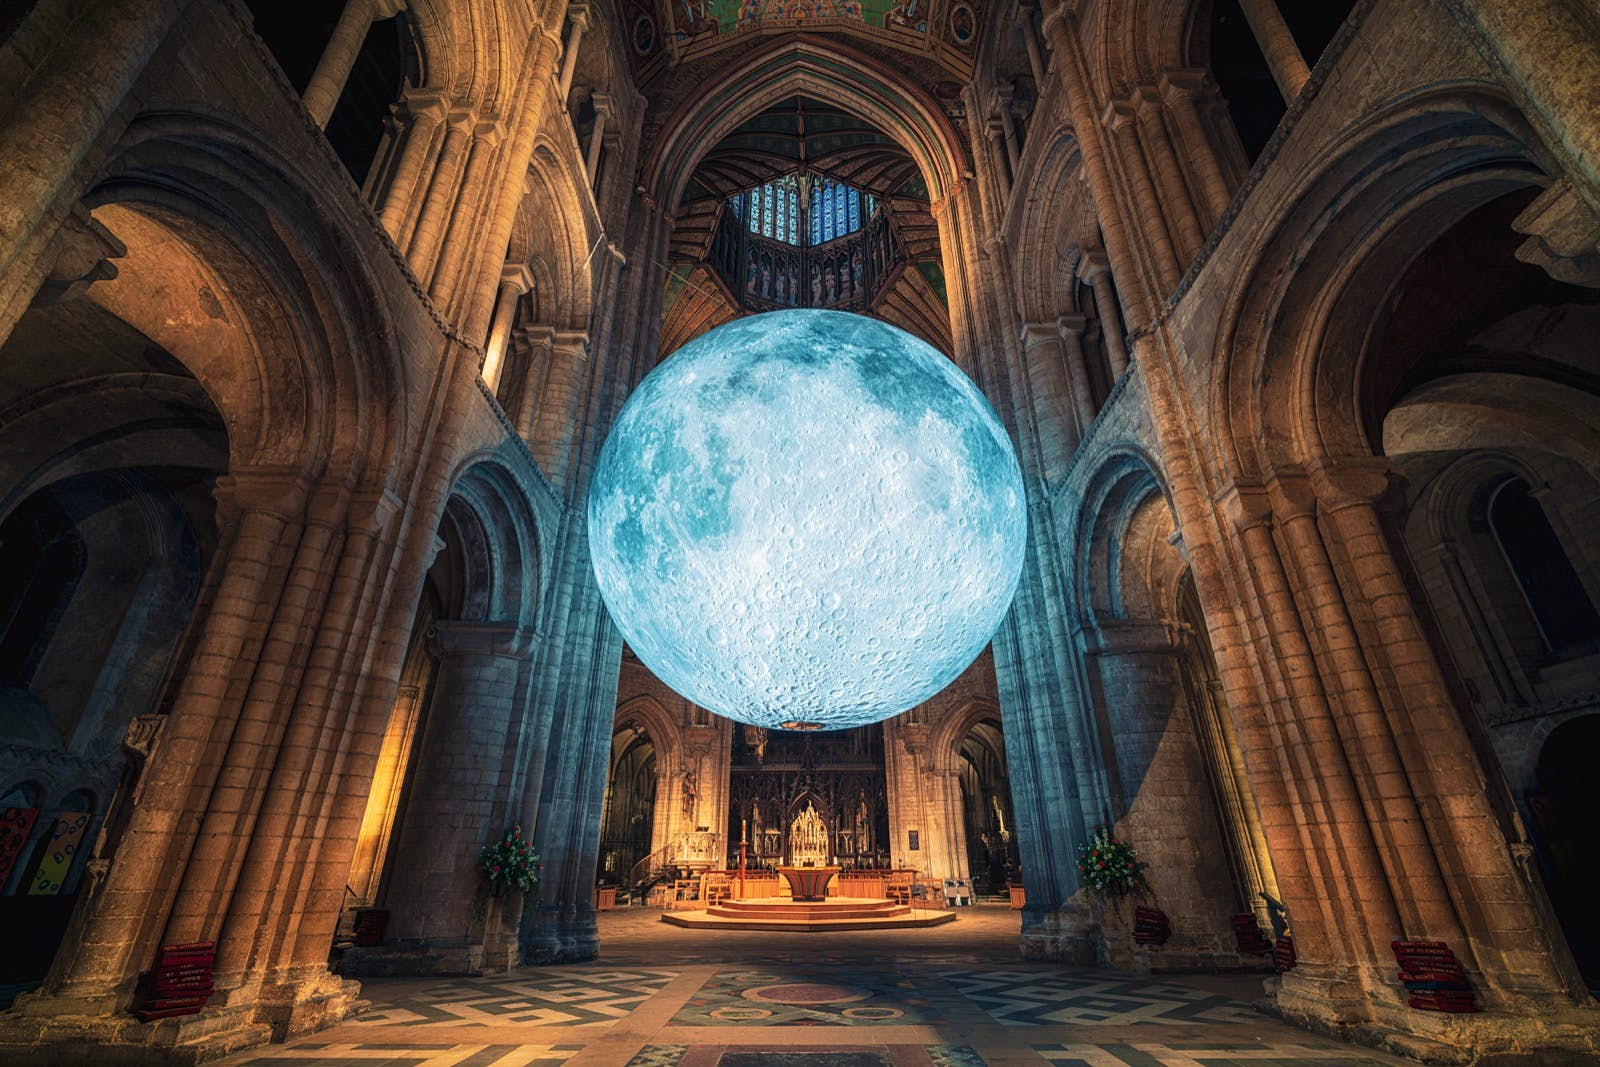 A huge glowing replica of the moon inside the softly lit vaults of a cathedral. The moon appears to be suspended in mid air, surrounded by grey stone columns and stained glass windows. The altar of the church is visible in the background.